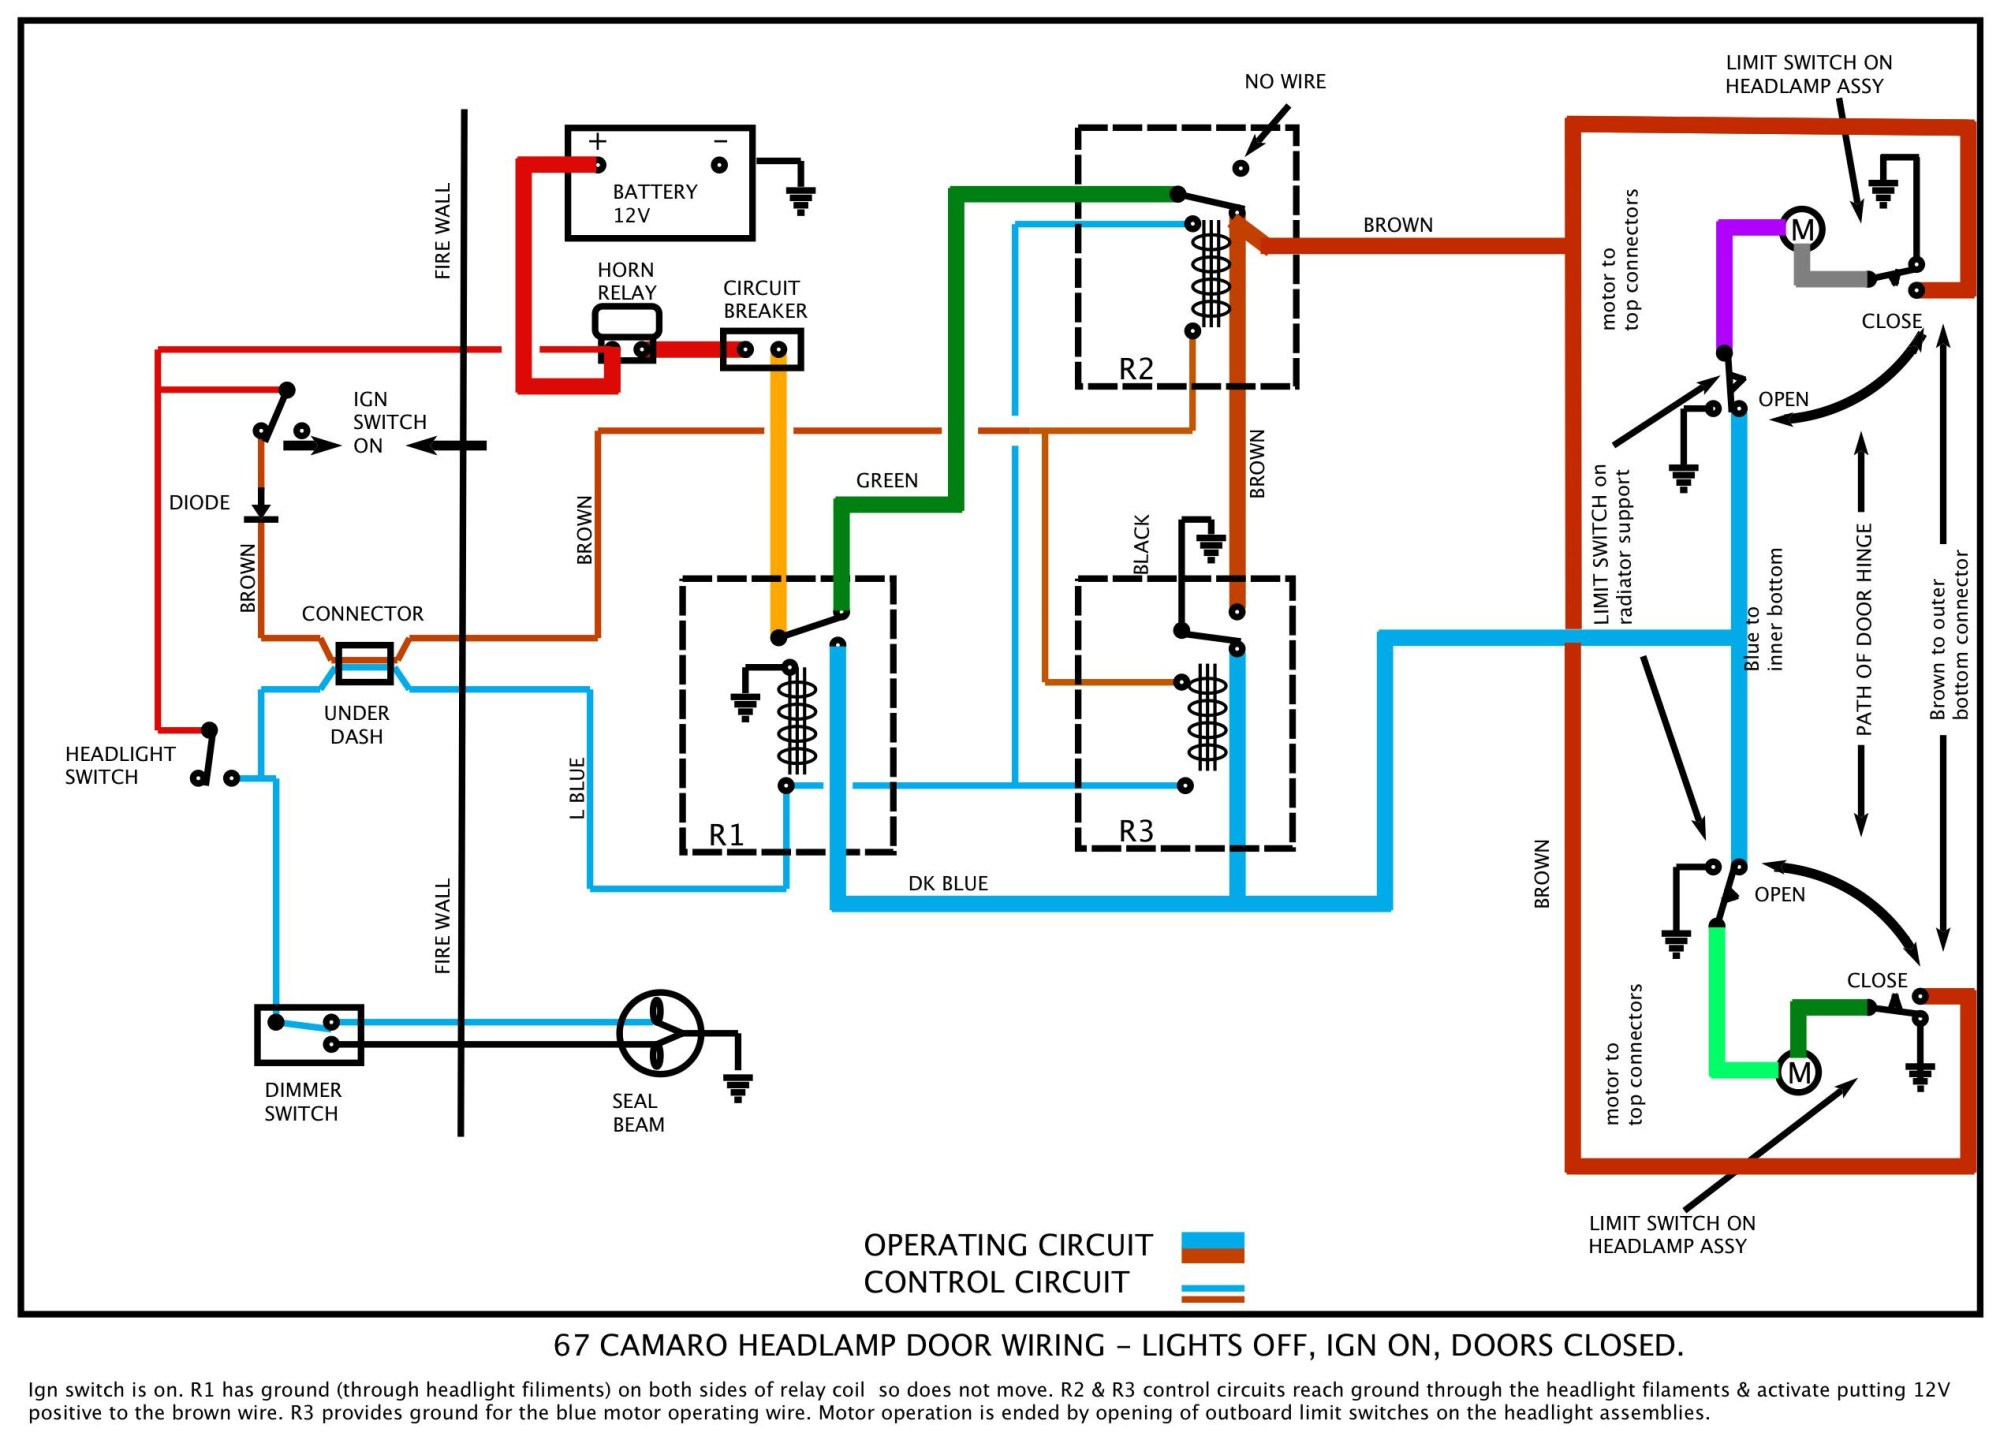 hight resolution of 1968 camaro ac wiring diagram wiring diagram fascinating 1968 camaro ac wiring diagram 1968 camaro ac wiring diagram